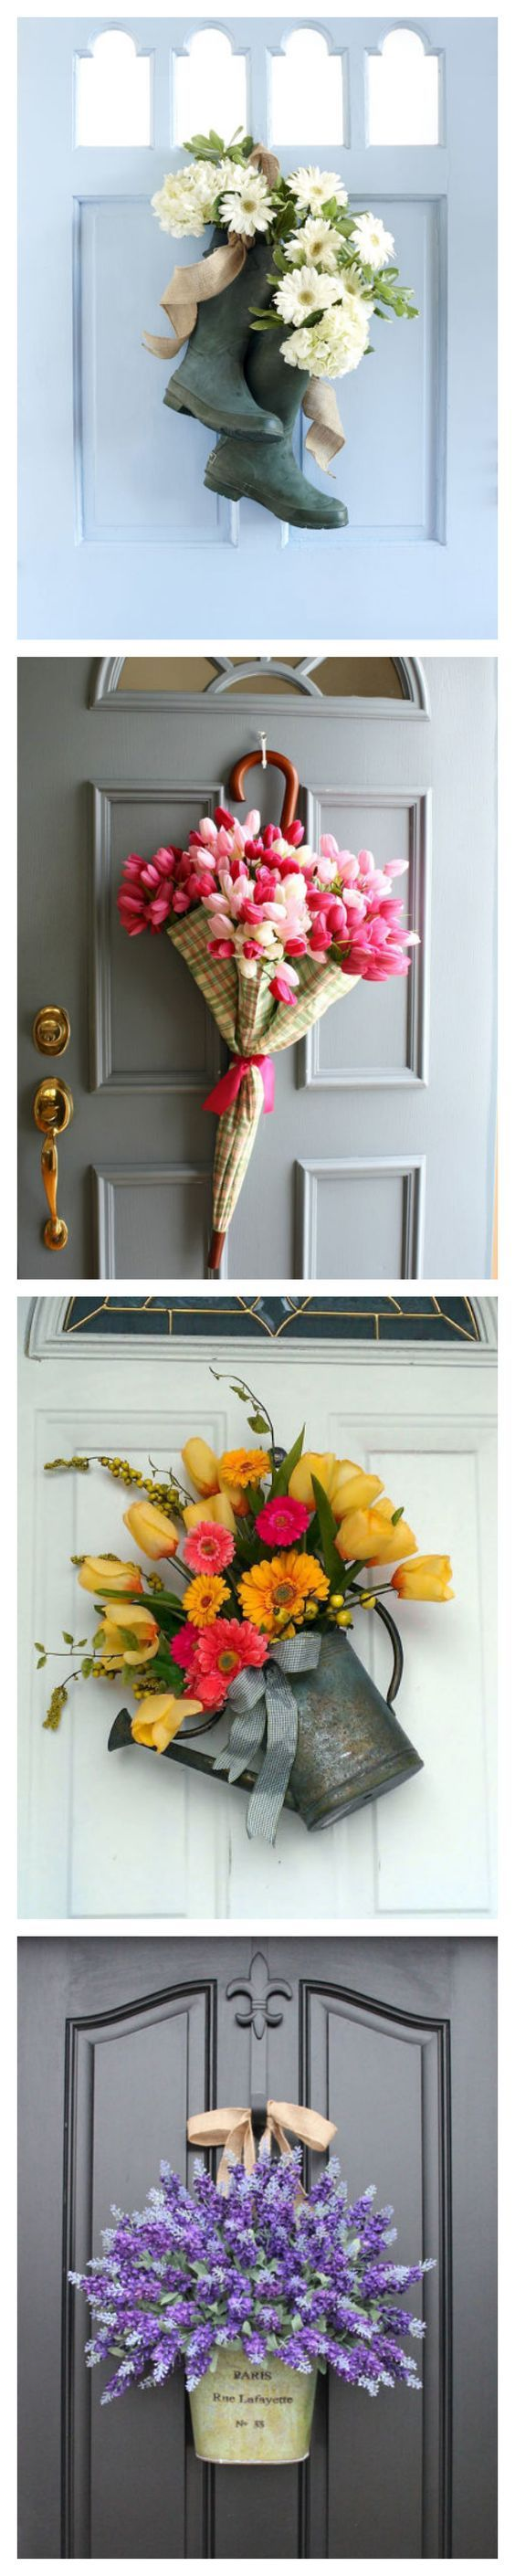 12 Beautiful Spring Decorations to Hang on Your Door That Arent Wreaths